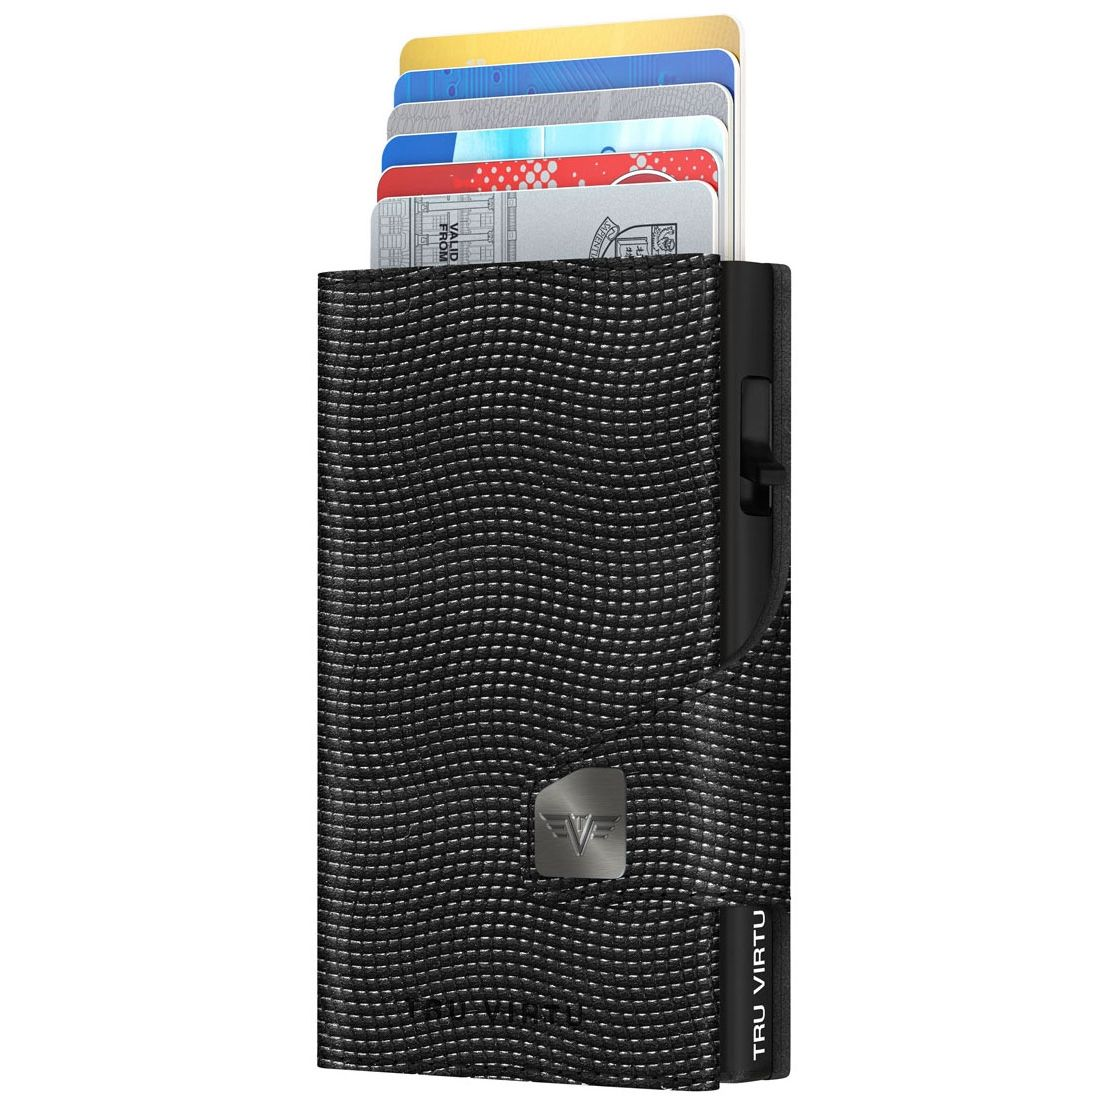 TRU VIRTU Click n Slide Wallet With Coin Pocket - Lizard Black